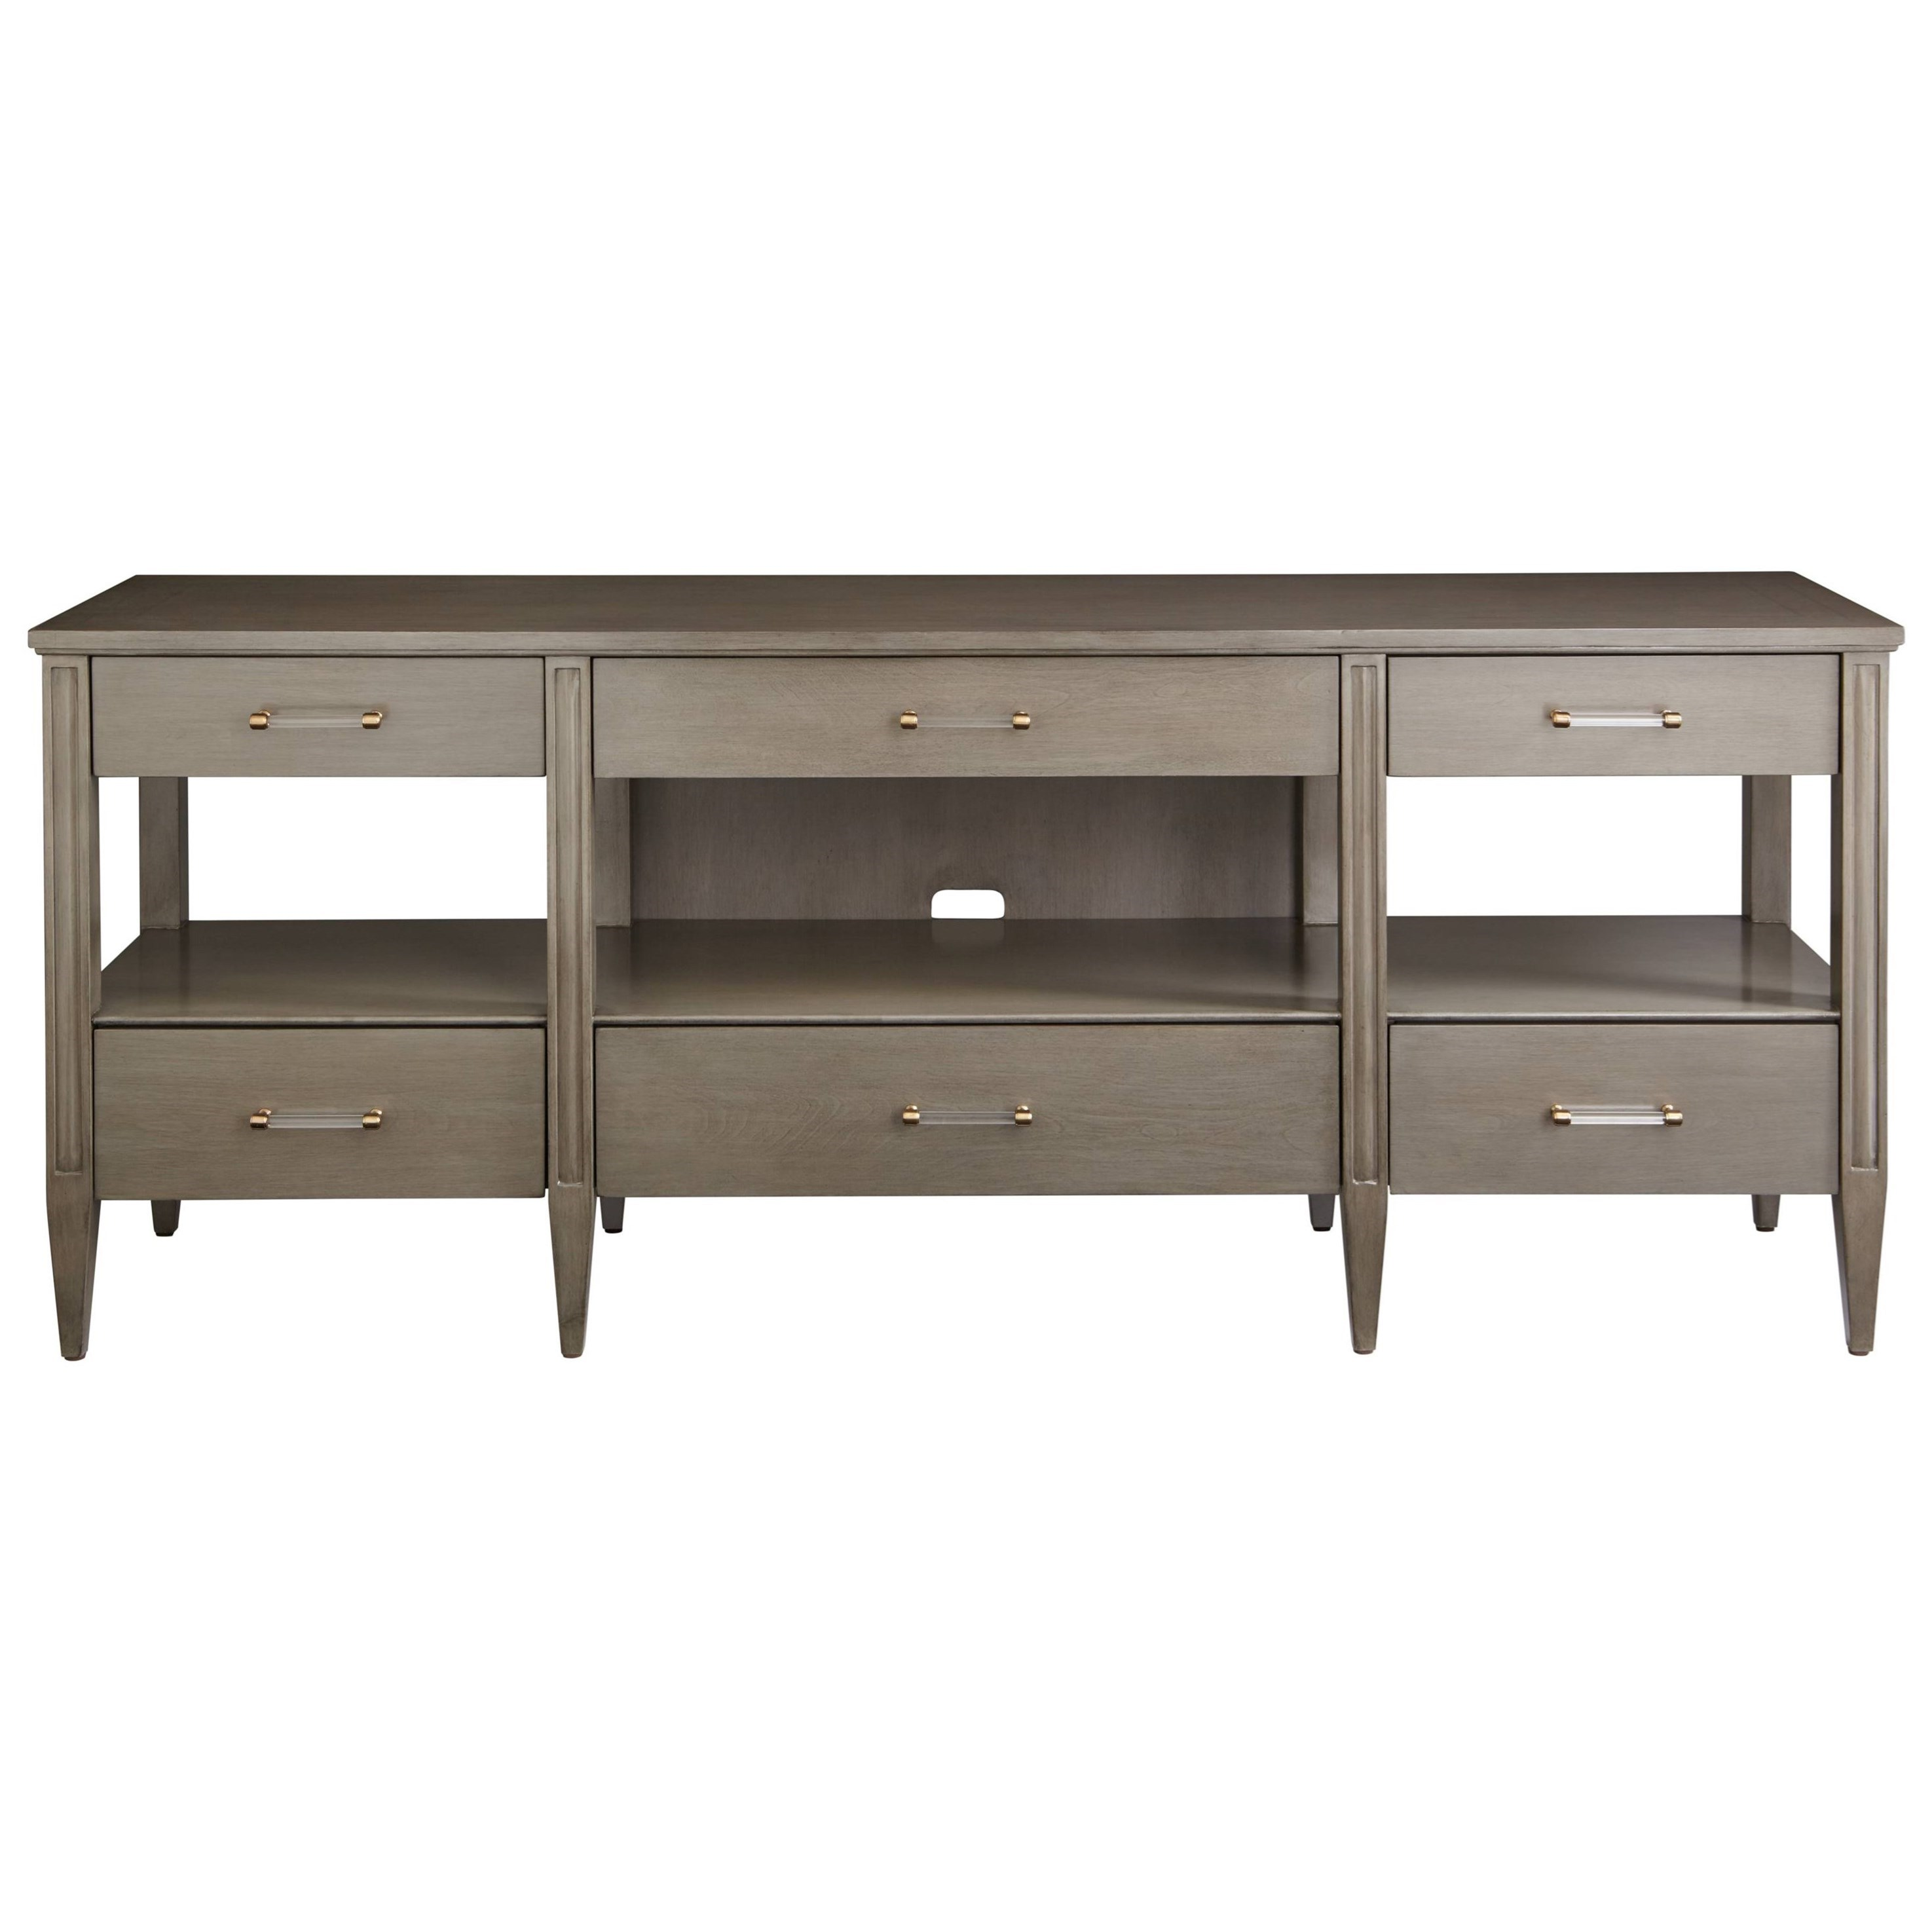 Stanley Furniture Coastal Living Oasis Mulholland Media Console - Item Number: 527-65-30